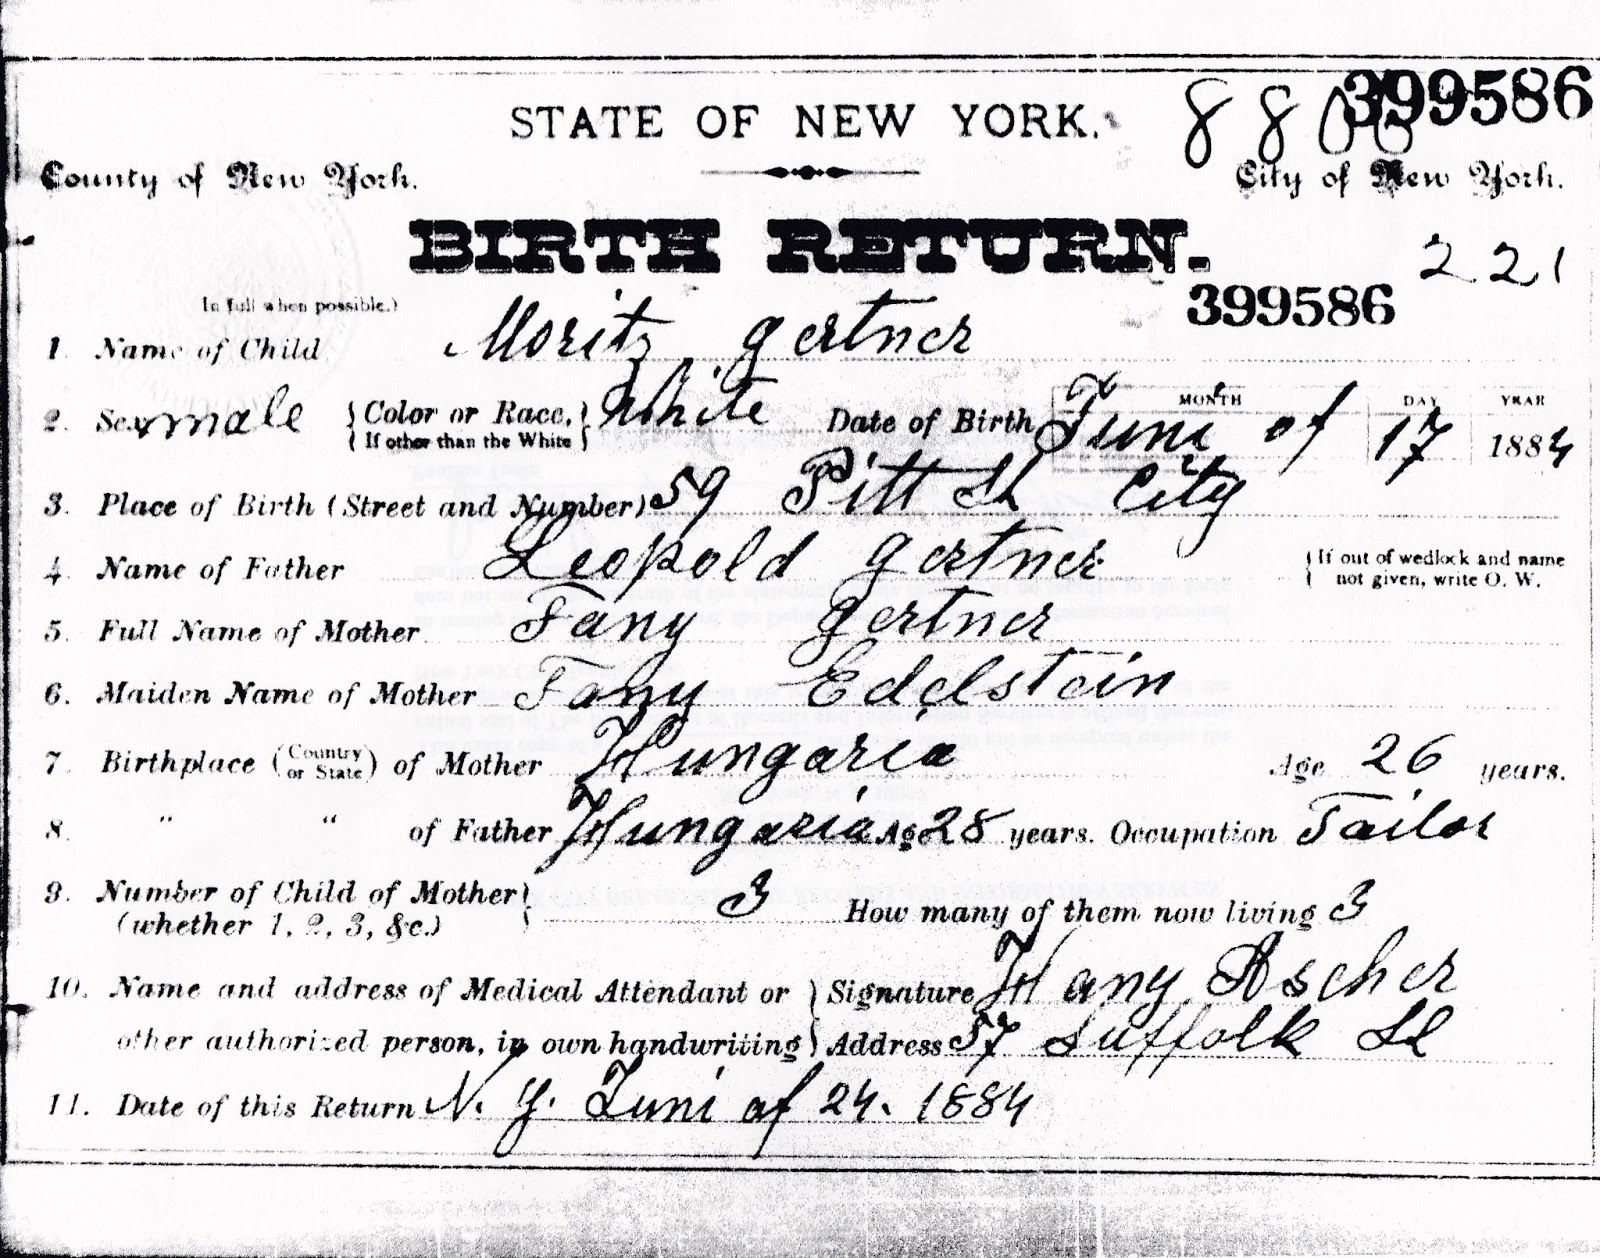 Leaves branches july 2015 new york state birth certificate for my grand uncle shows his name moritz gertner son of leopold fany edelstein gertner of 59 pitt street xflitez Gallery